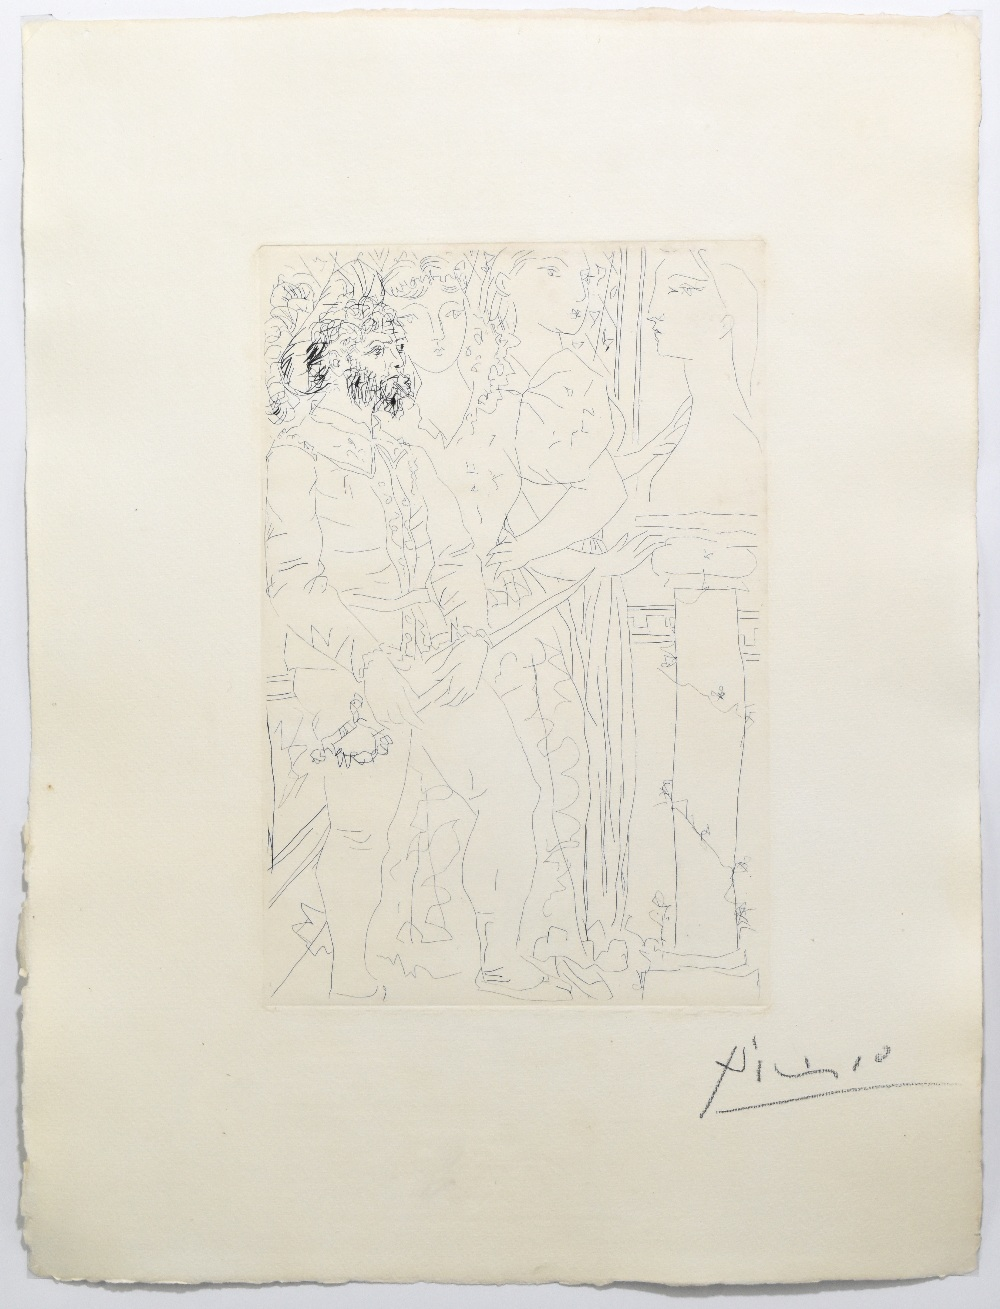 """***WITHDRAWN*** PABLO PICASSO; """"Trois Acteurs"""", signed lower right, 45cm x 34cm, framed and glazed - Image 2 of 5"""